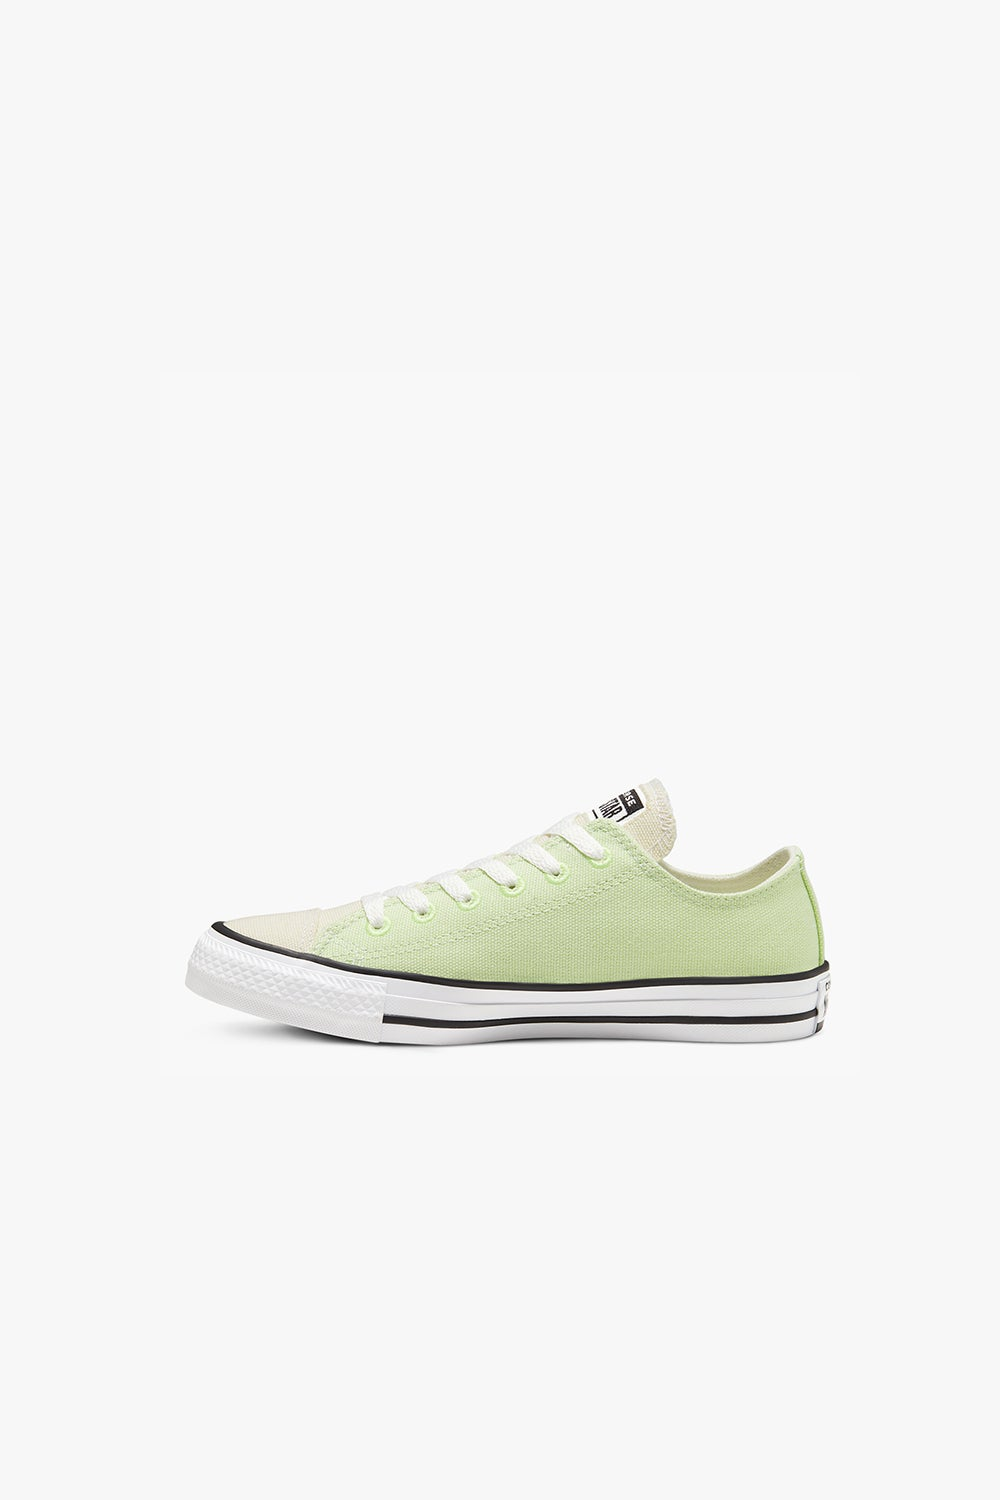 Converse Chuck Taylor All Star Renew Cotton Barely Volt